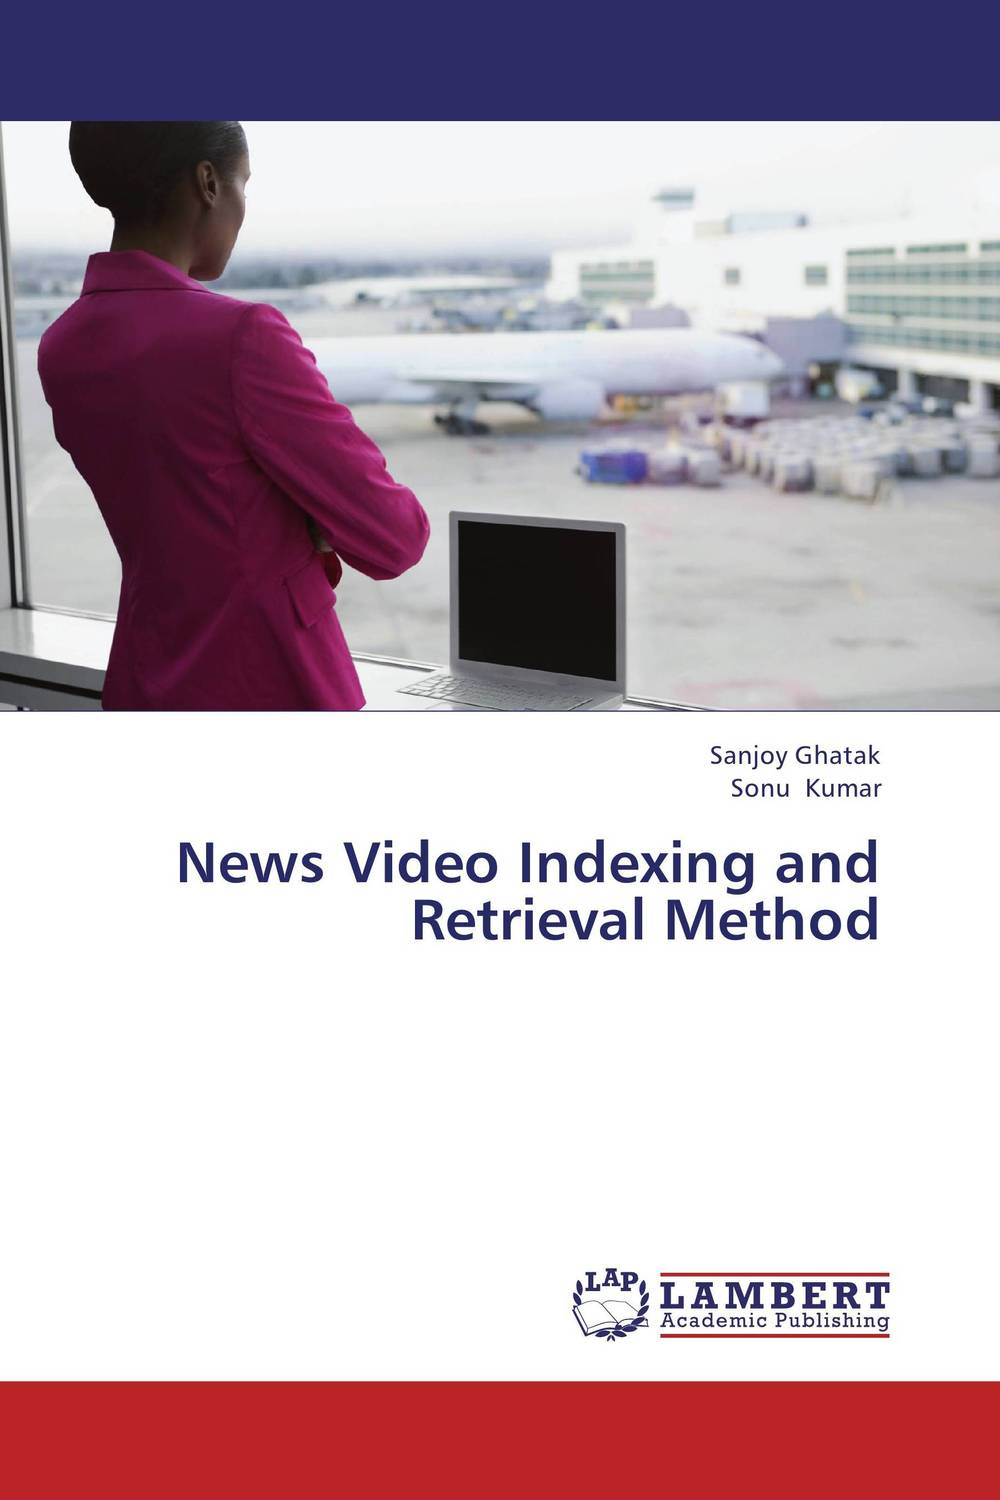 News Video Indexing and Retrieval Method designing of an information retrieval system in veterinary science